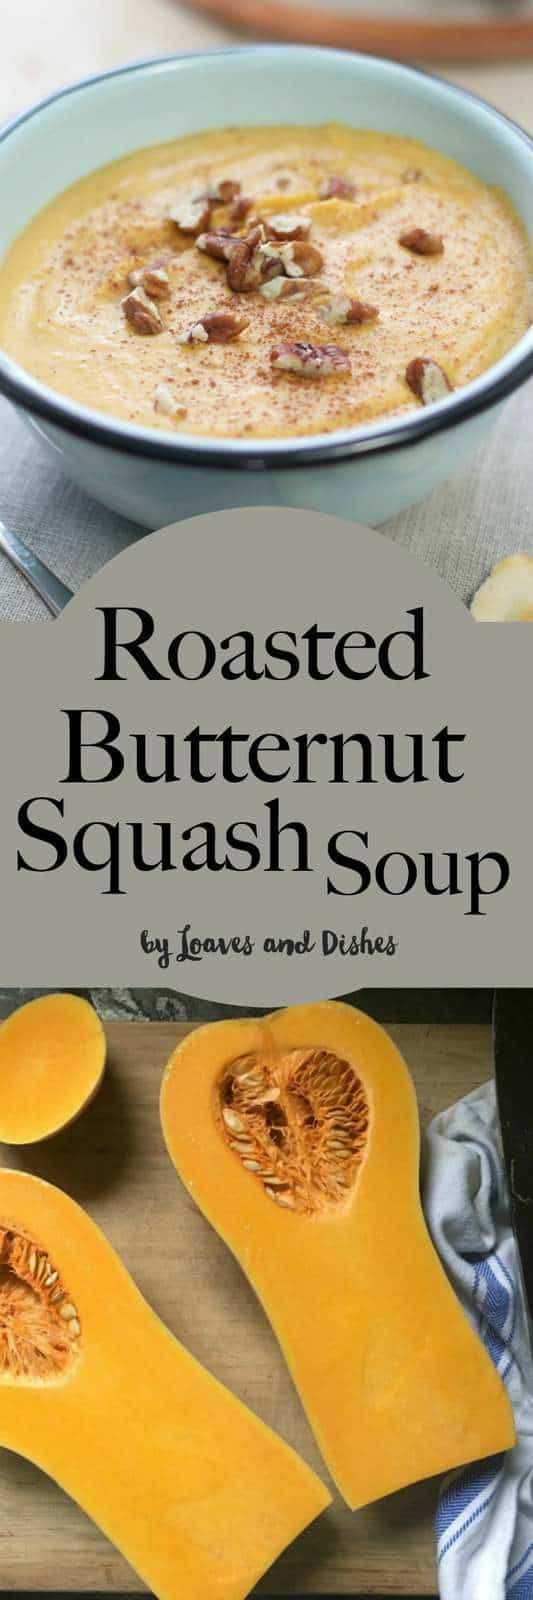 Easy Healthy Roasted Butternut Squash Soup.  Creamy and made with curry.  Complete photo instructions for how to make this soup. It's the BEST!  Like the Pioneer Woman's recipes.